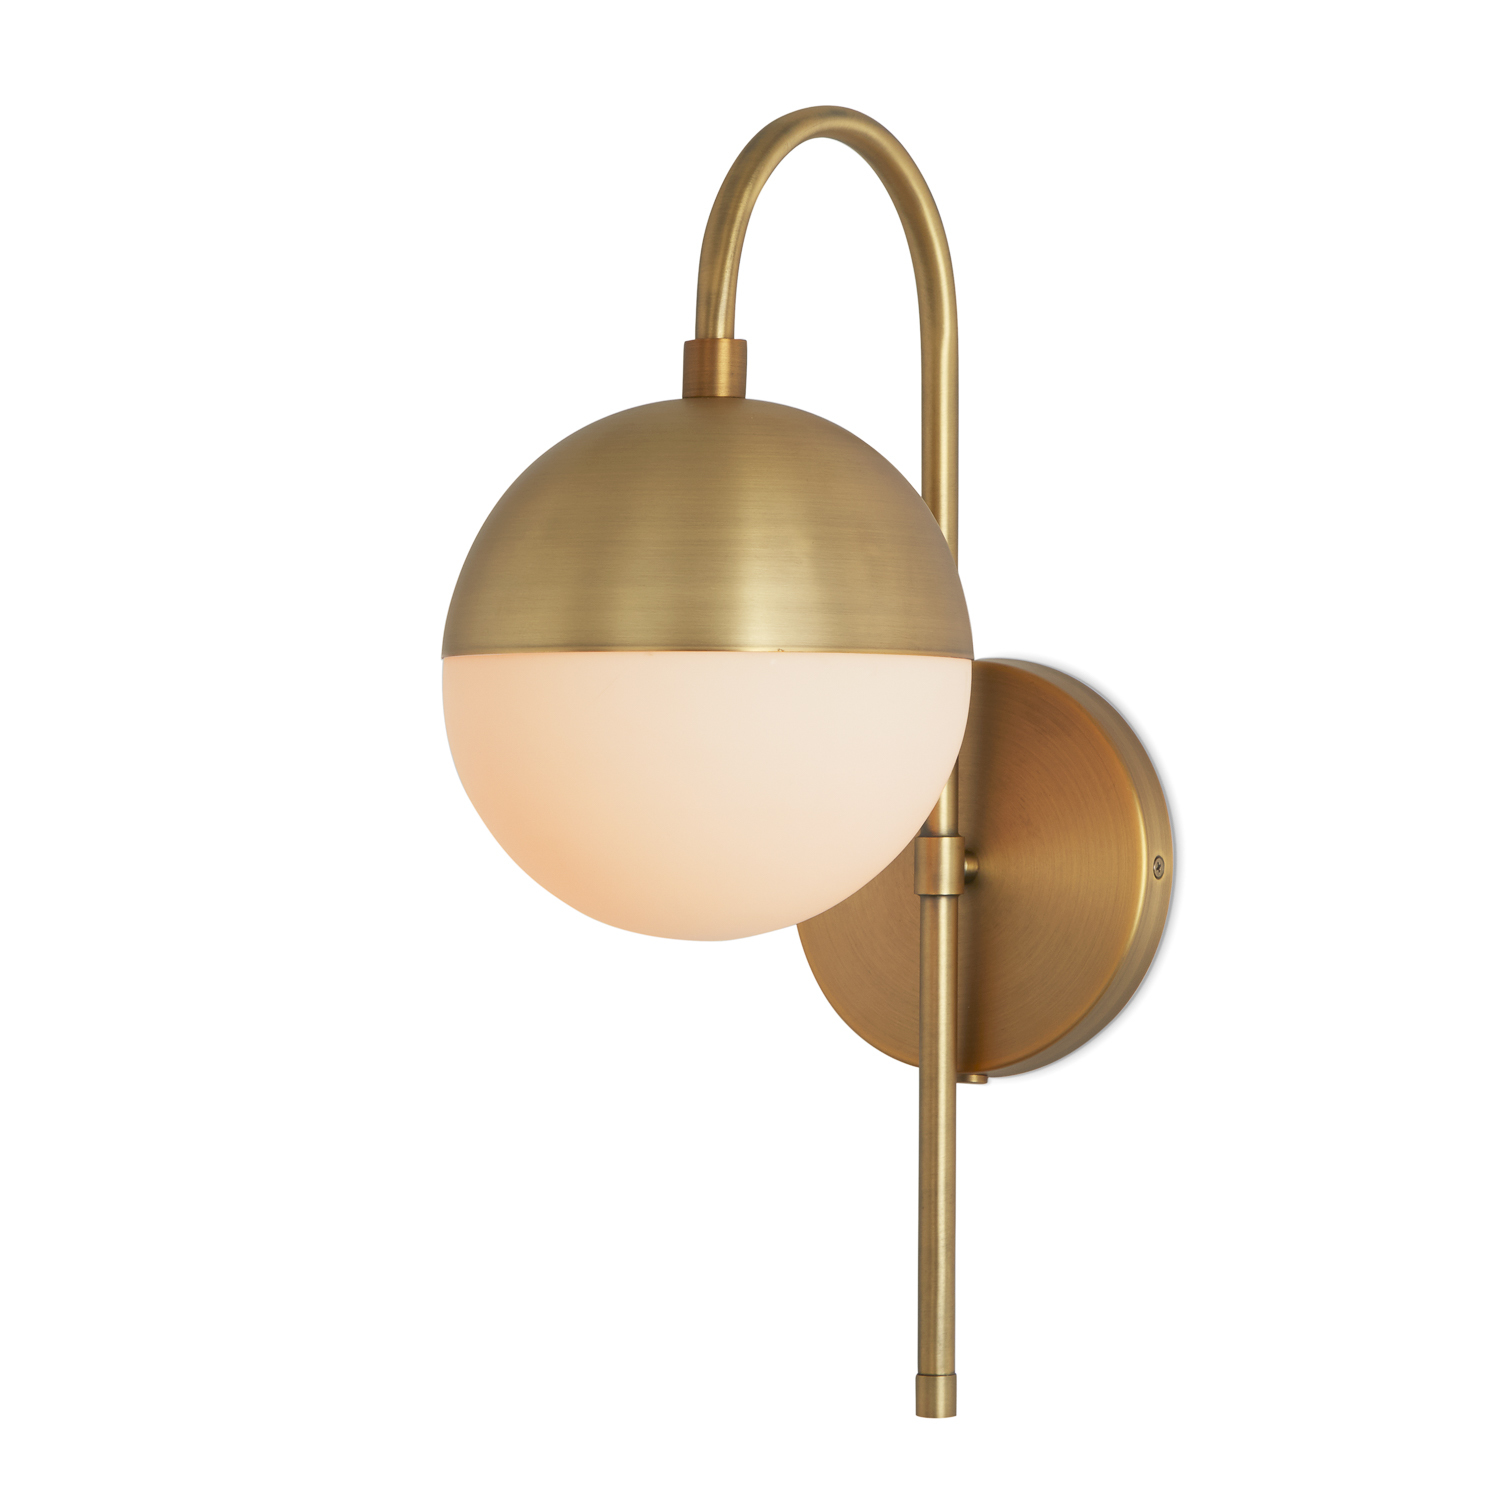 Wall Lights In Brass : Lights.com Wall Lights Powell Wall Sconce with Hooded White Globe, Aged Brass